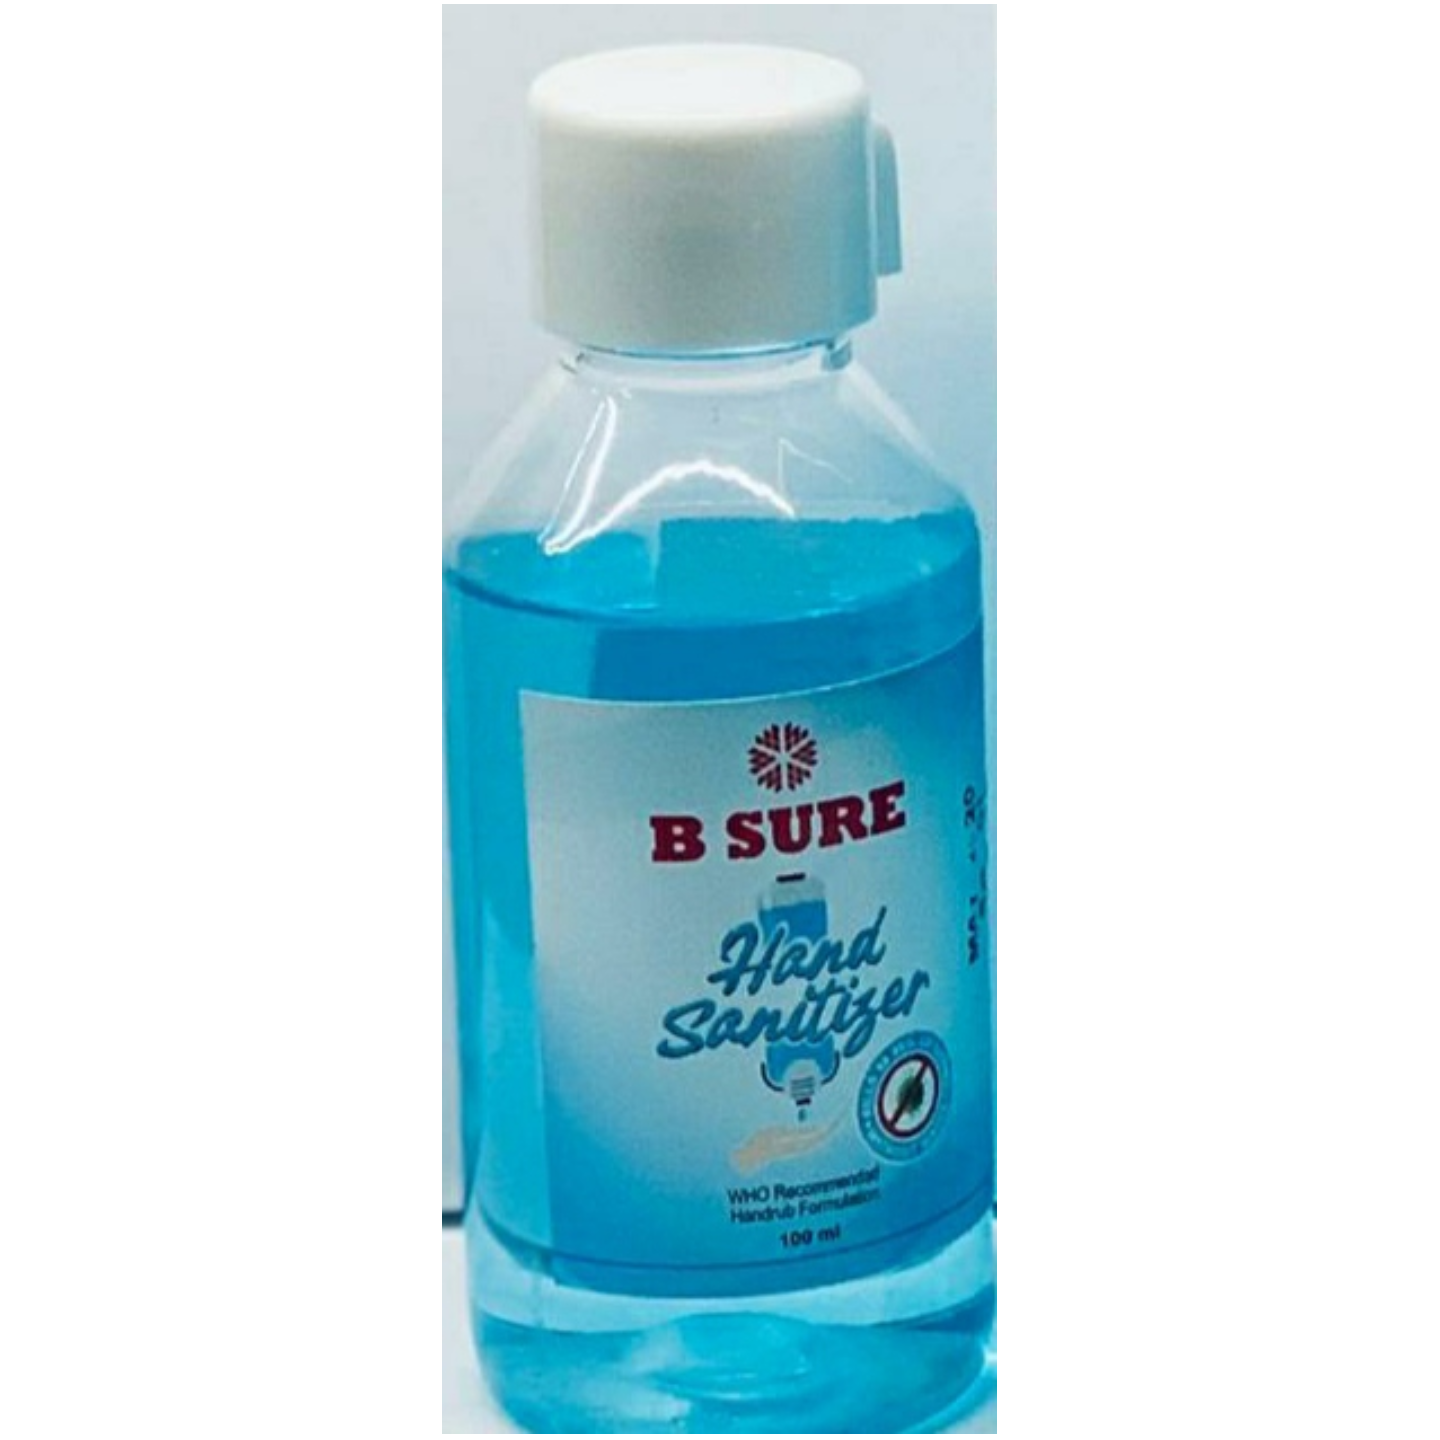 B Sure Hand Sanitizer 100ml